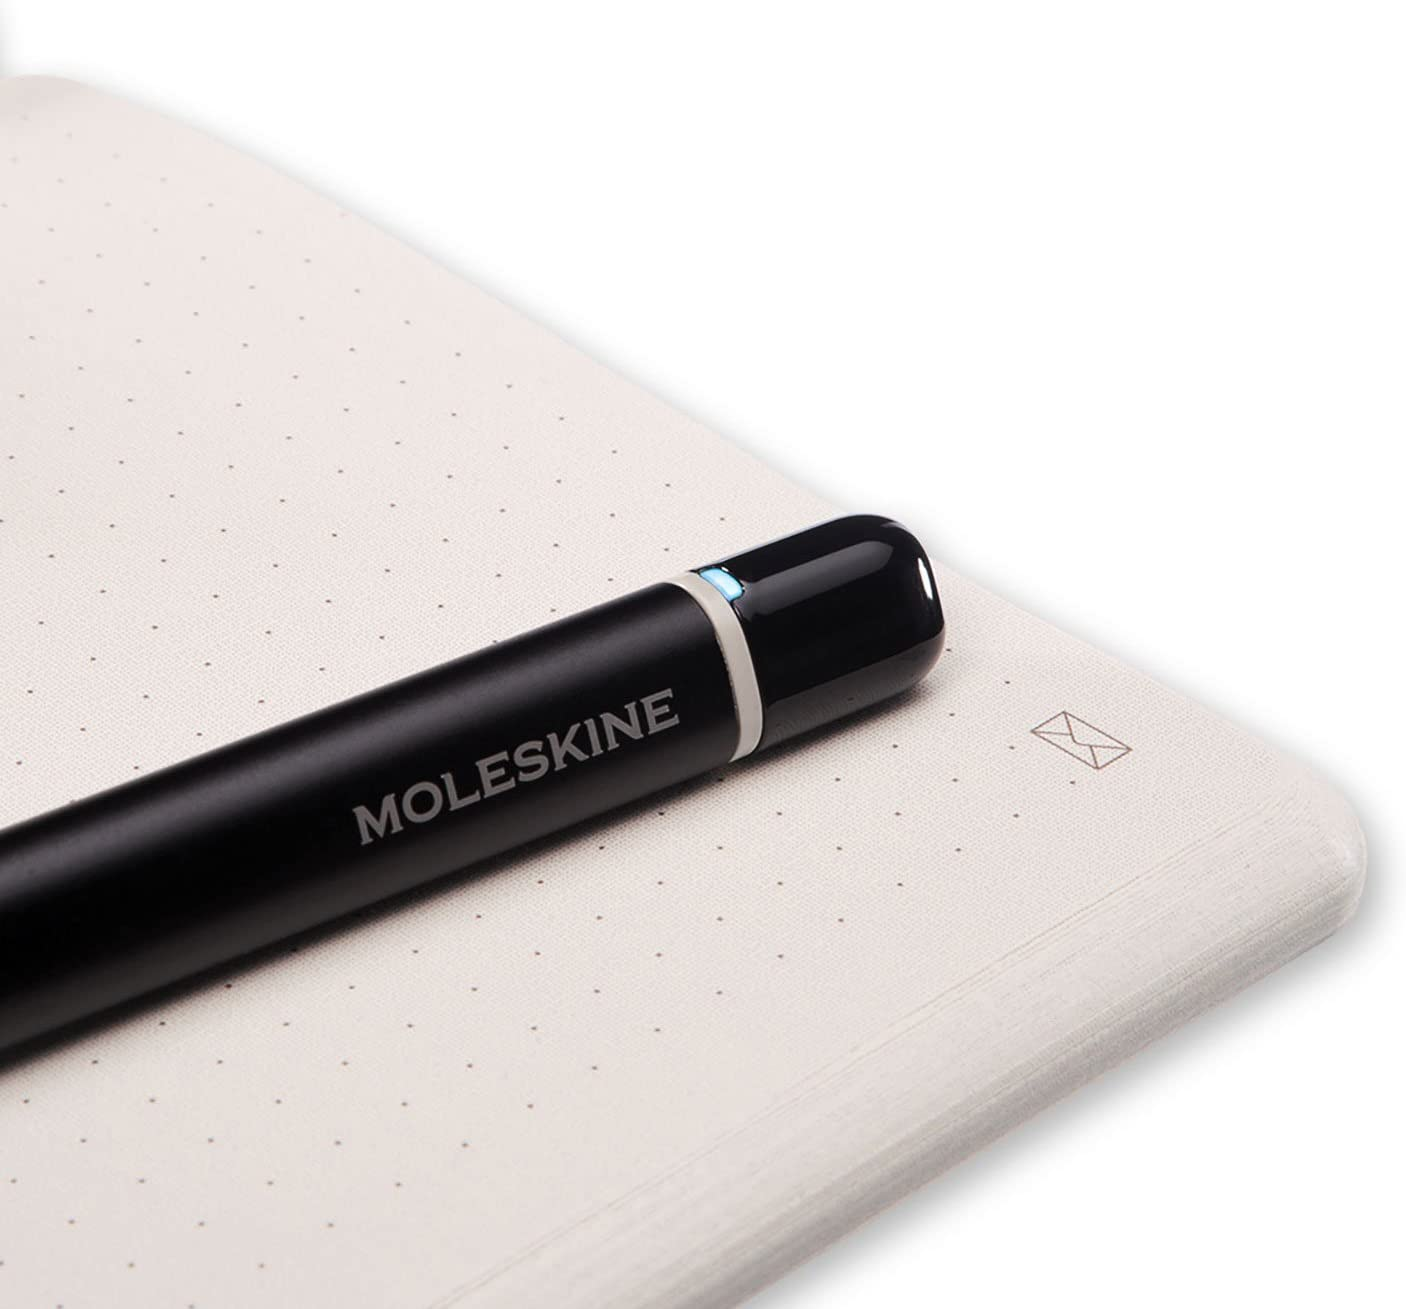 Moleskine Pen Smart Writing Set Pen Dotted Smart Notebook Use With Moleskine App For Digitally Storing Notes Only Compatible With Moleskine Smart Notebooks Amazon Ca Office Products